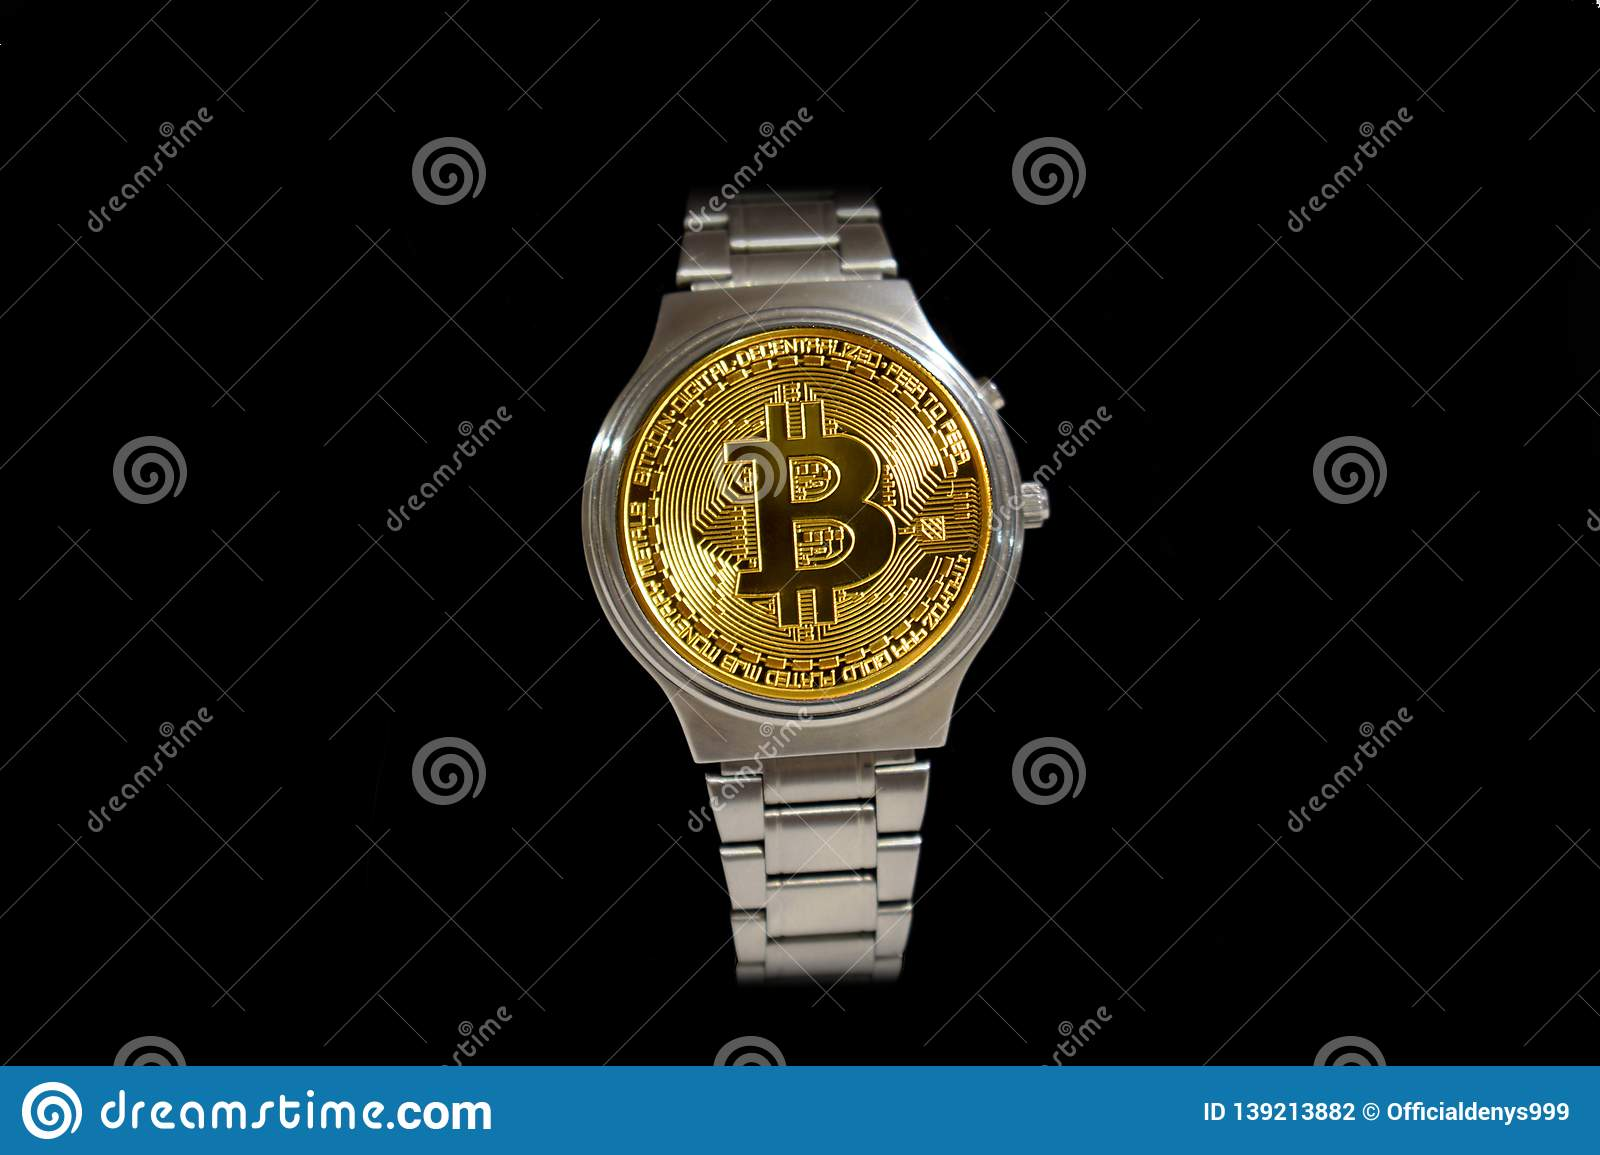 Wrist Watch Screen Bitcoin On Black Background  Crypto, Concept